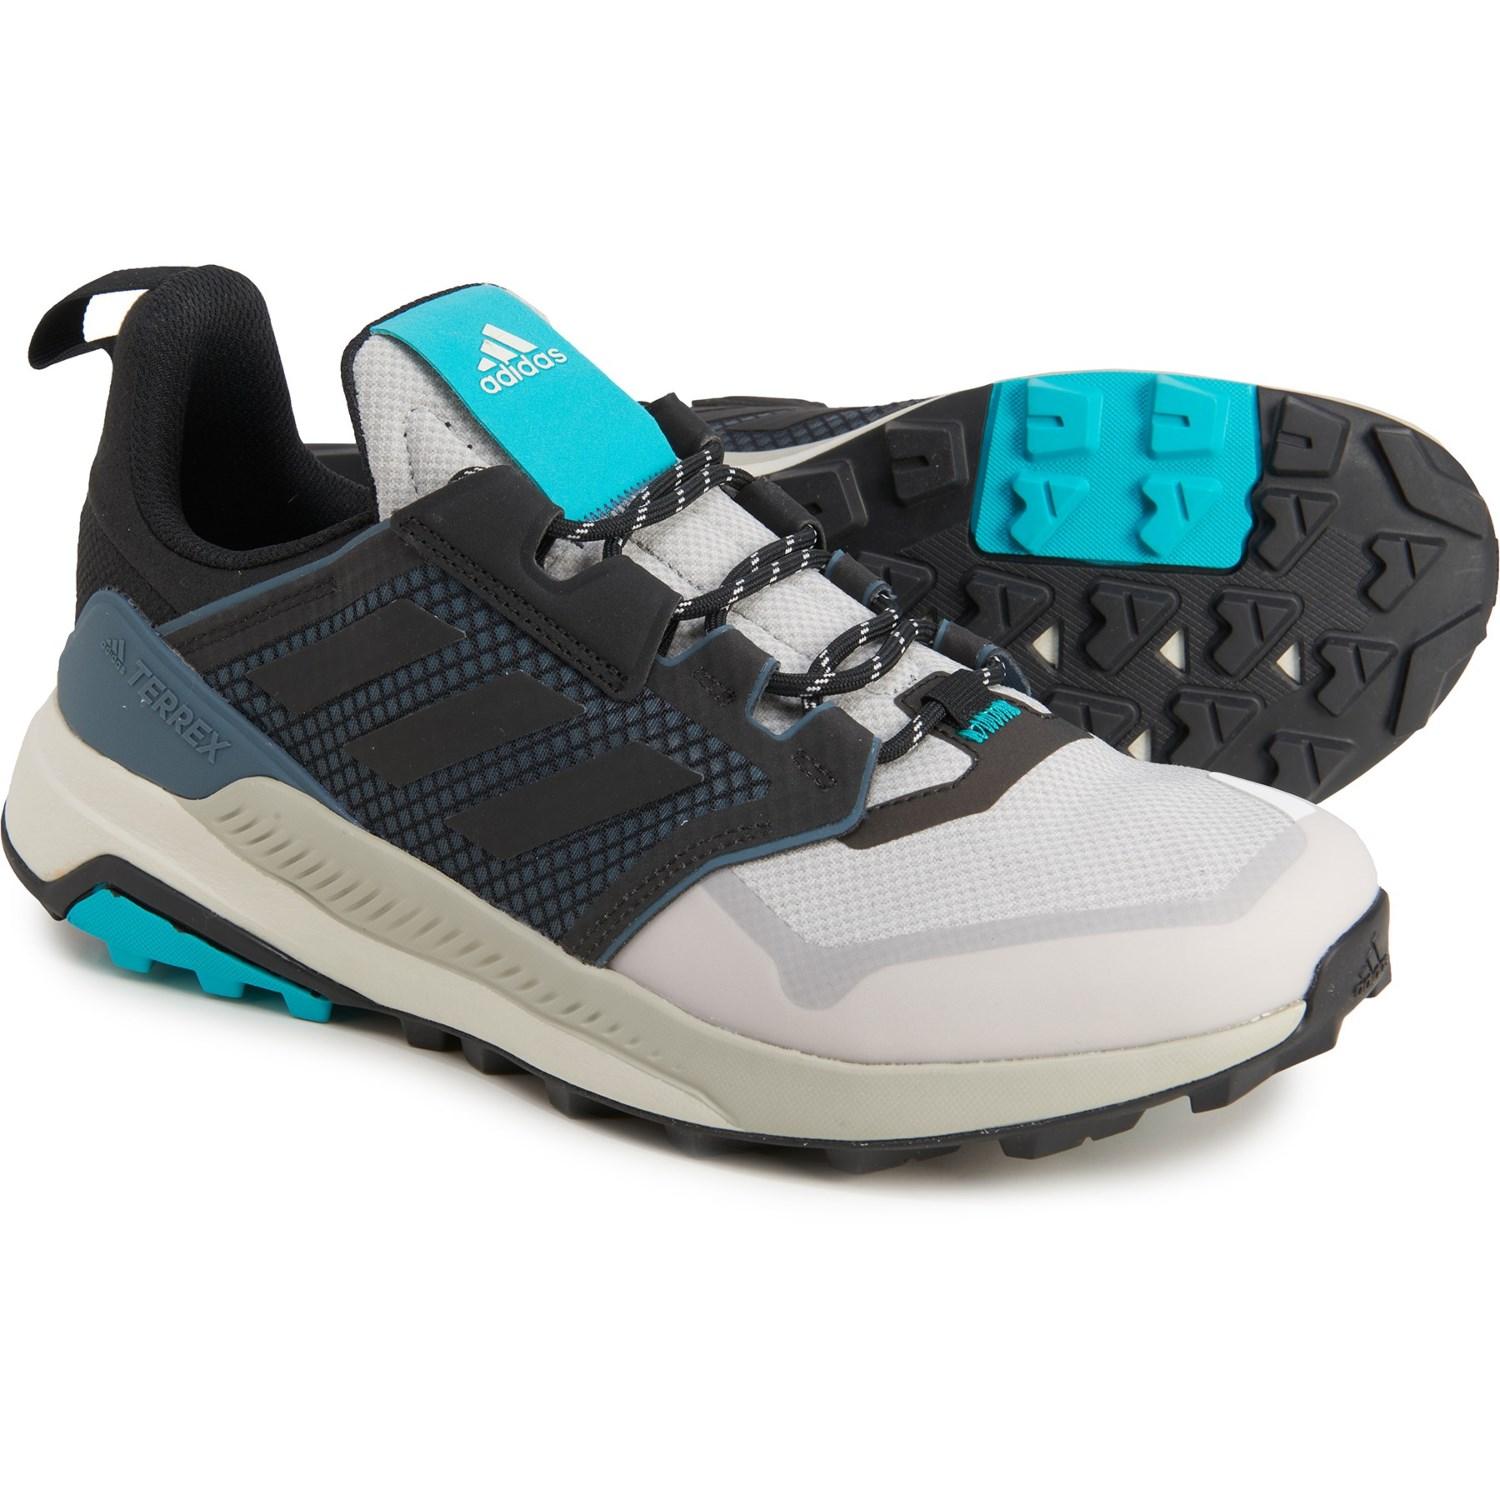 Dinámica Preparación recursos humanos  adidas outdoor Terrex Trailmaker Hiking Shoes (For Men) - Save 25%